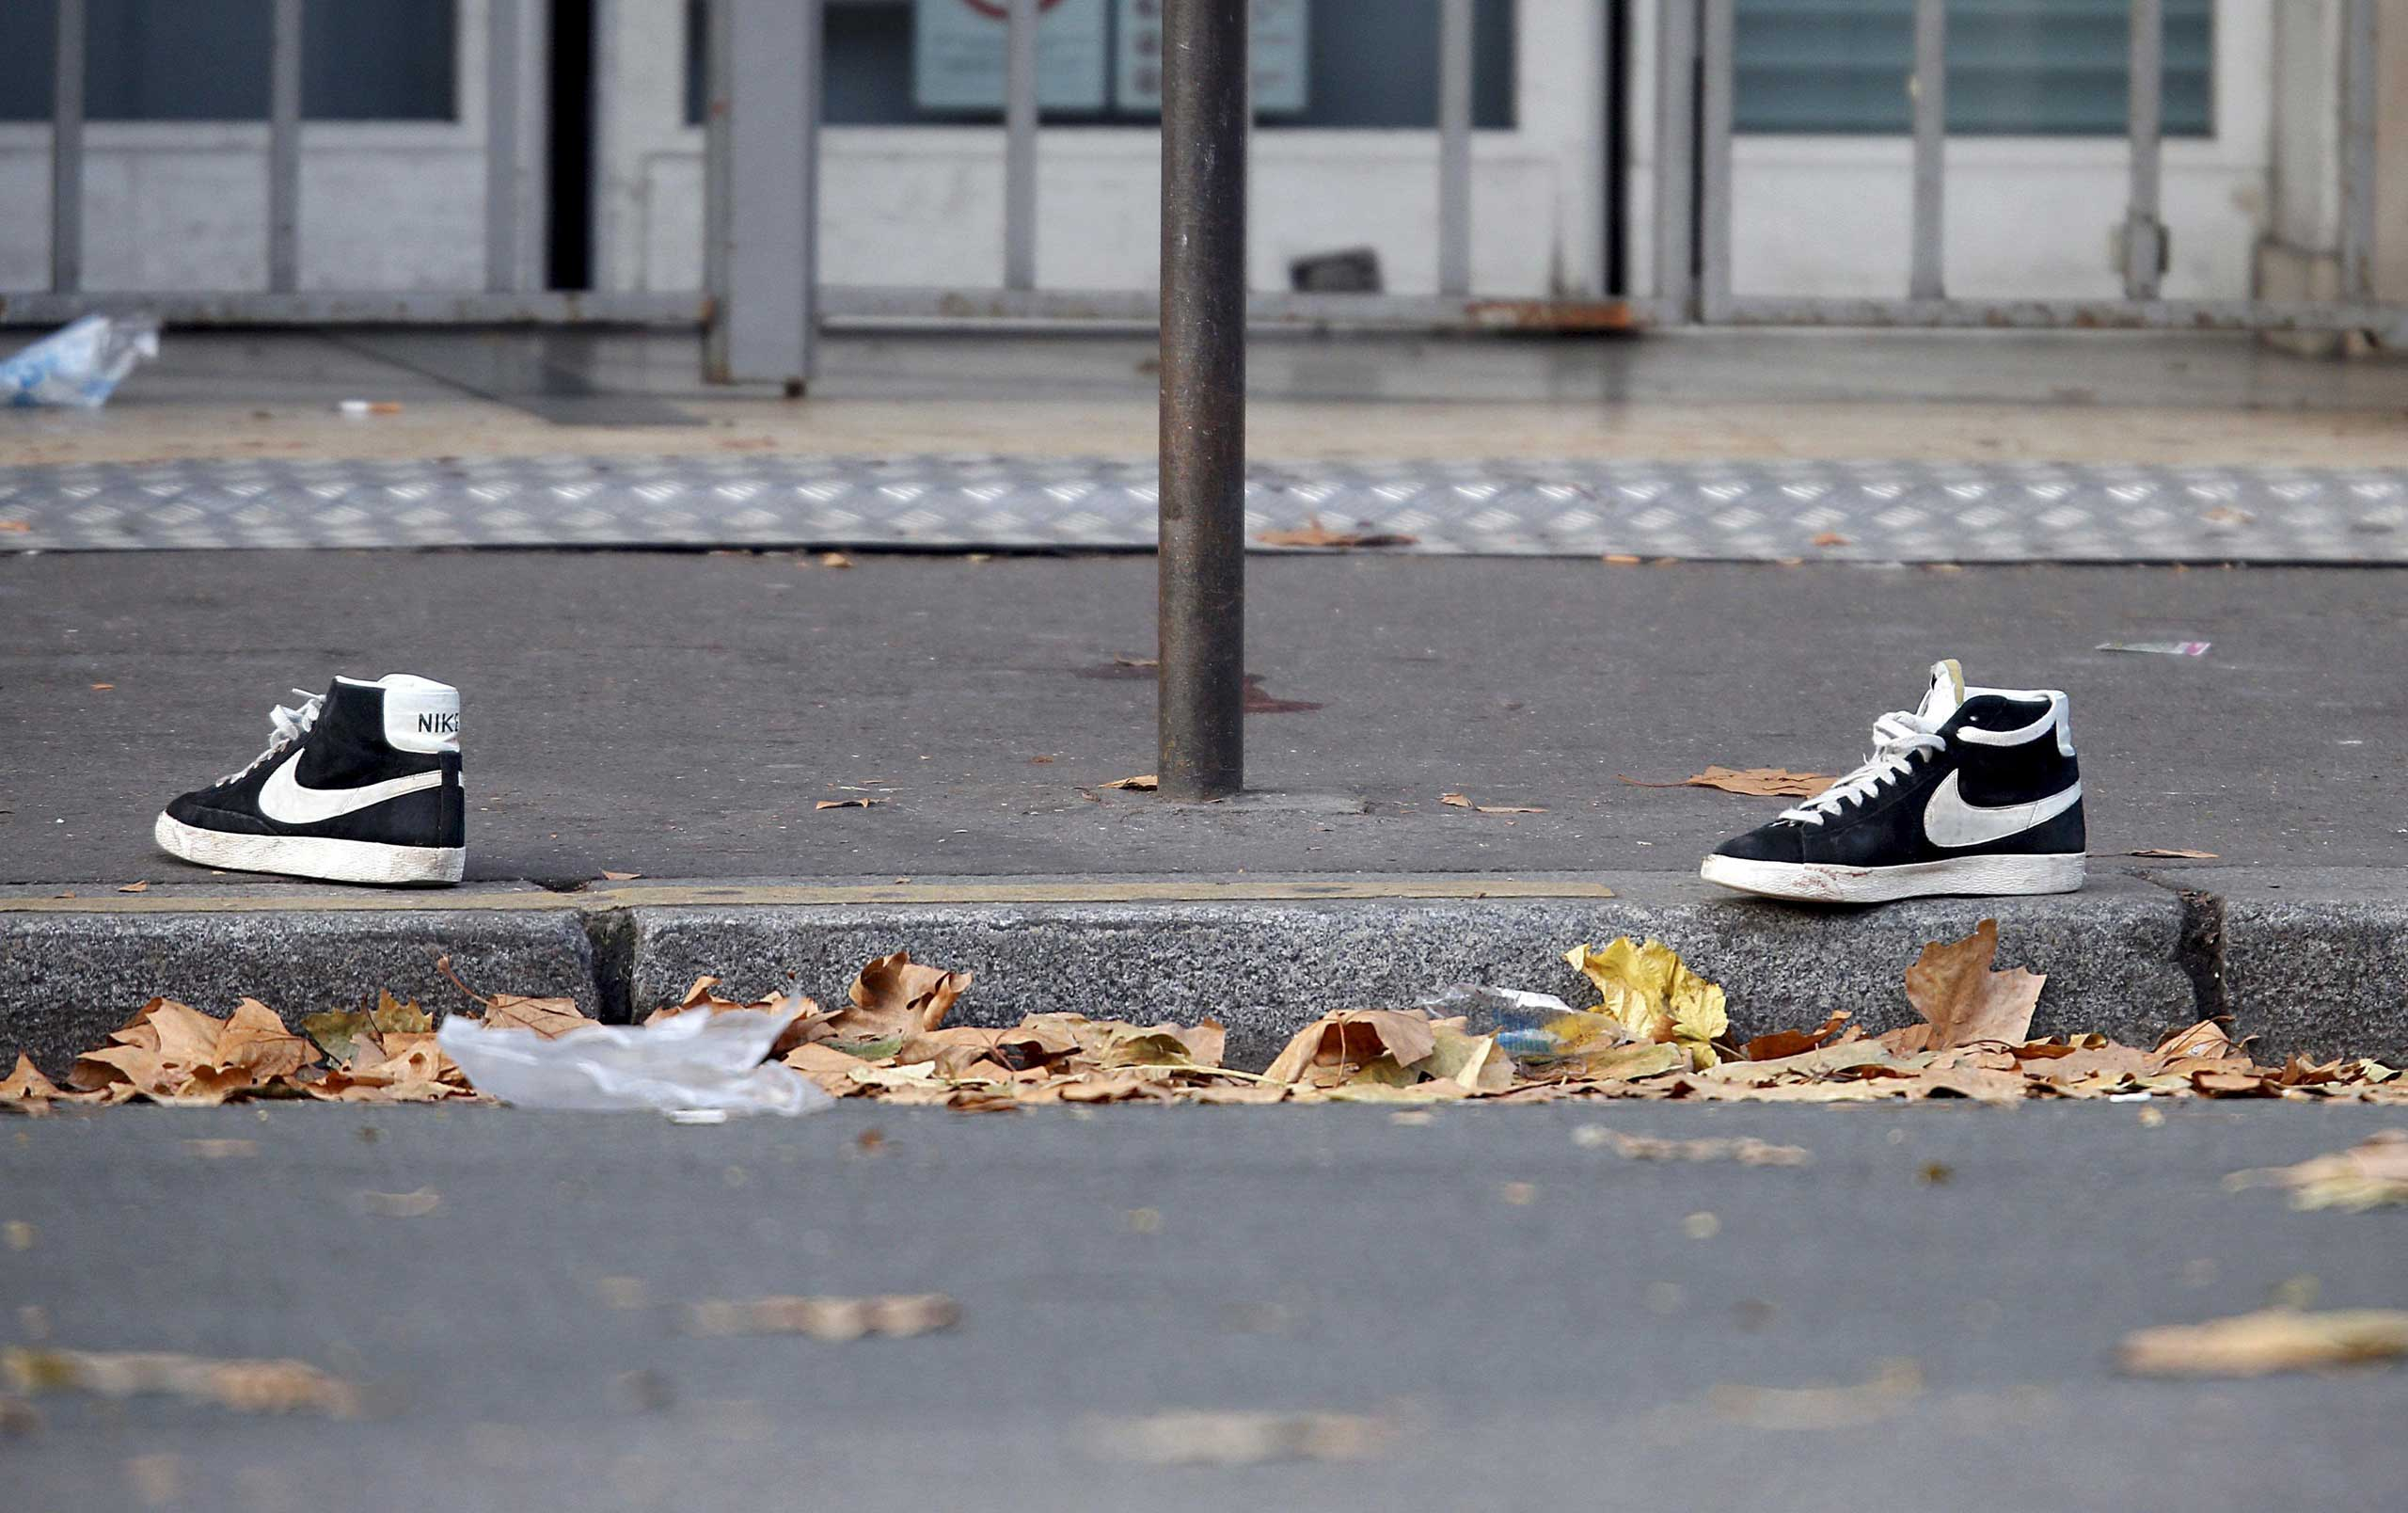 A pair of abandoned shoes seen left in the street near the Bataclan concert hall the morning after a series of deadly attacks in Paris, Nov. 14, 2015.